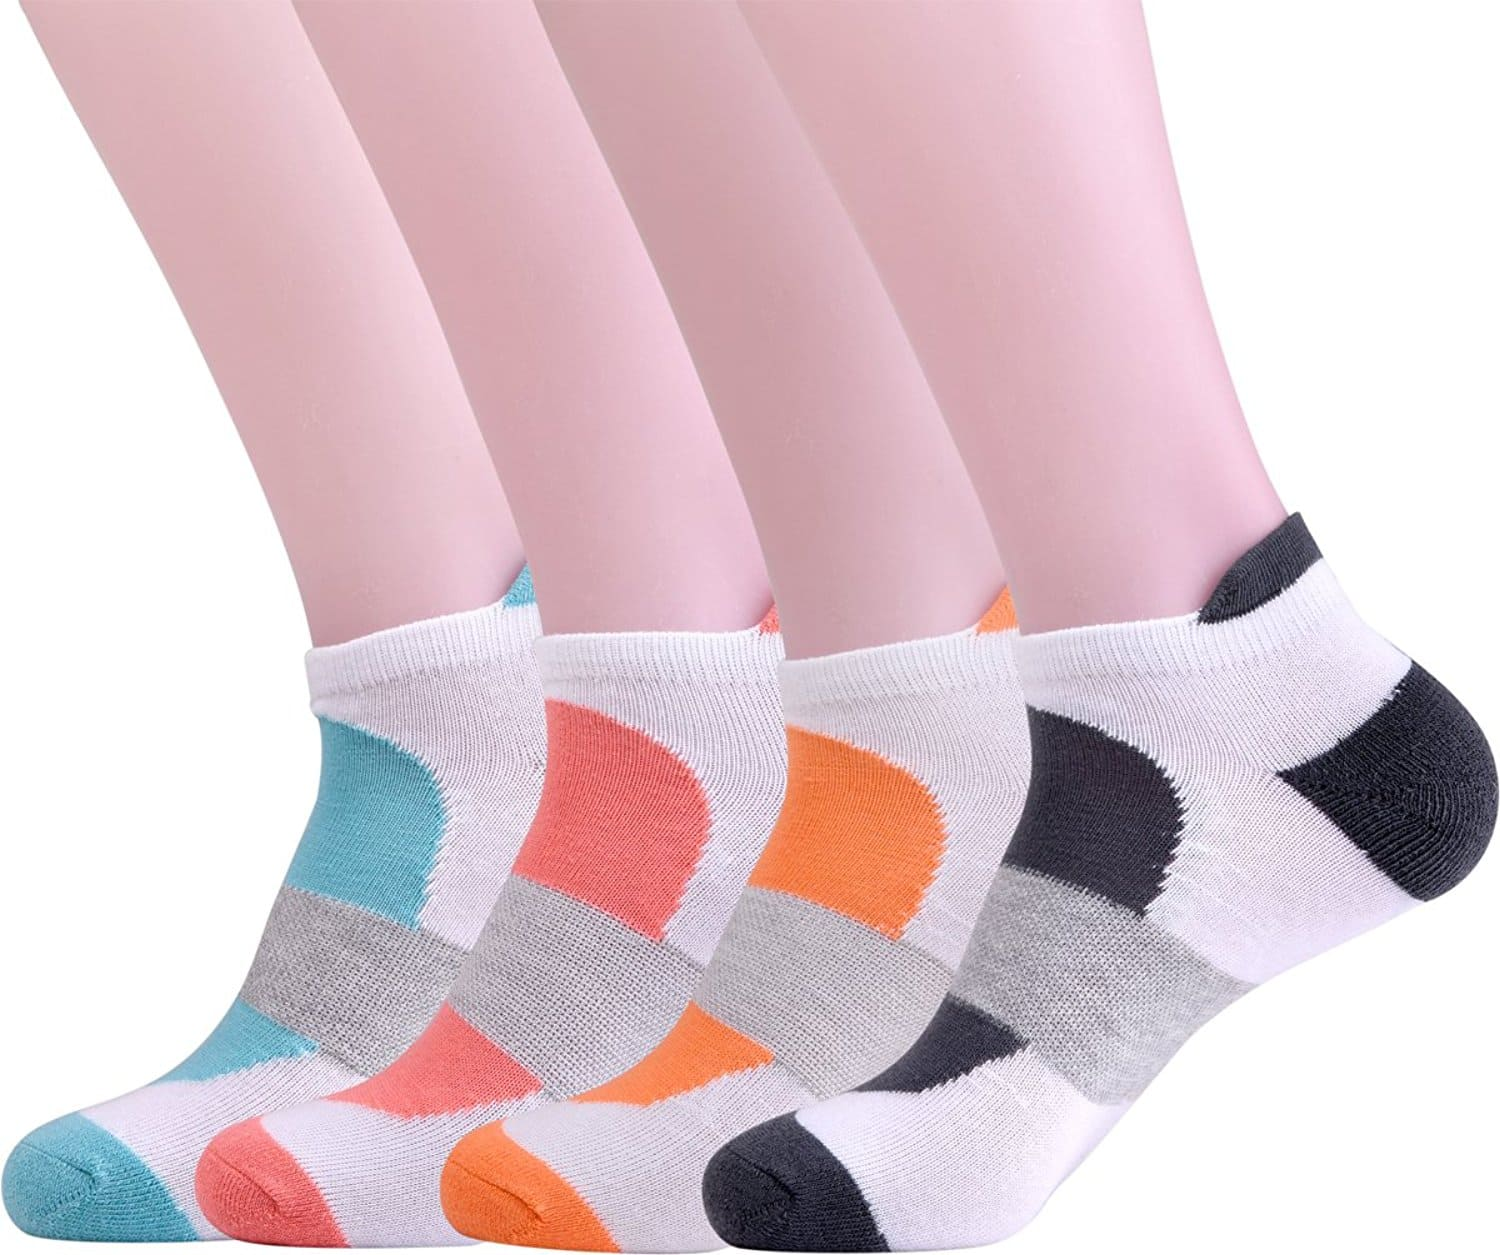 Women's 4 Outdoor Sports White and Colorful Patterned Low Cut Cotton Socks $6.24 + free shipping